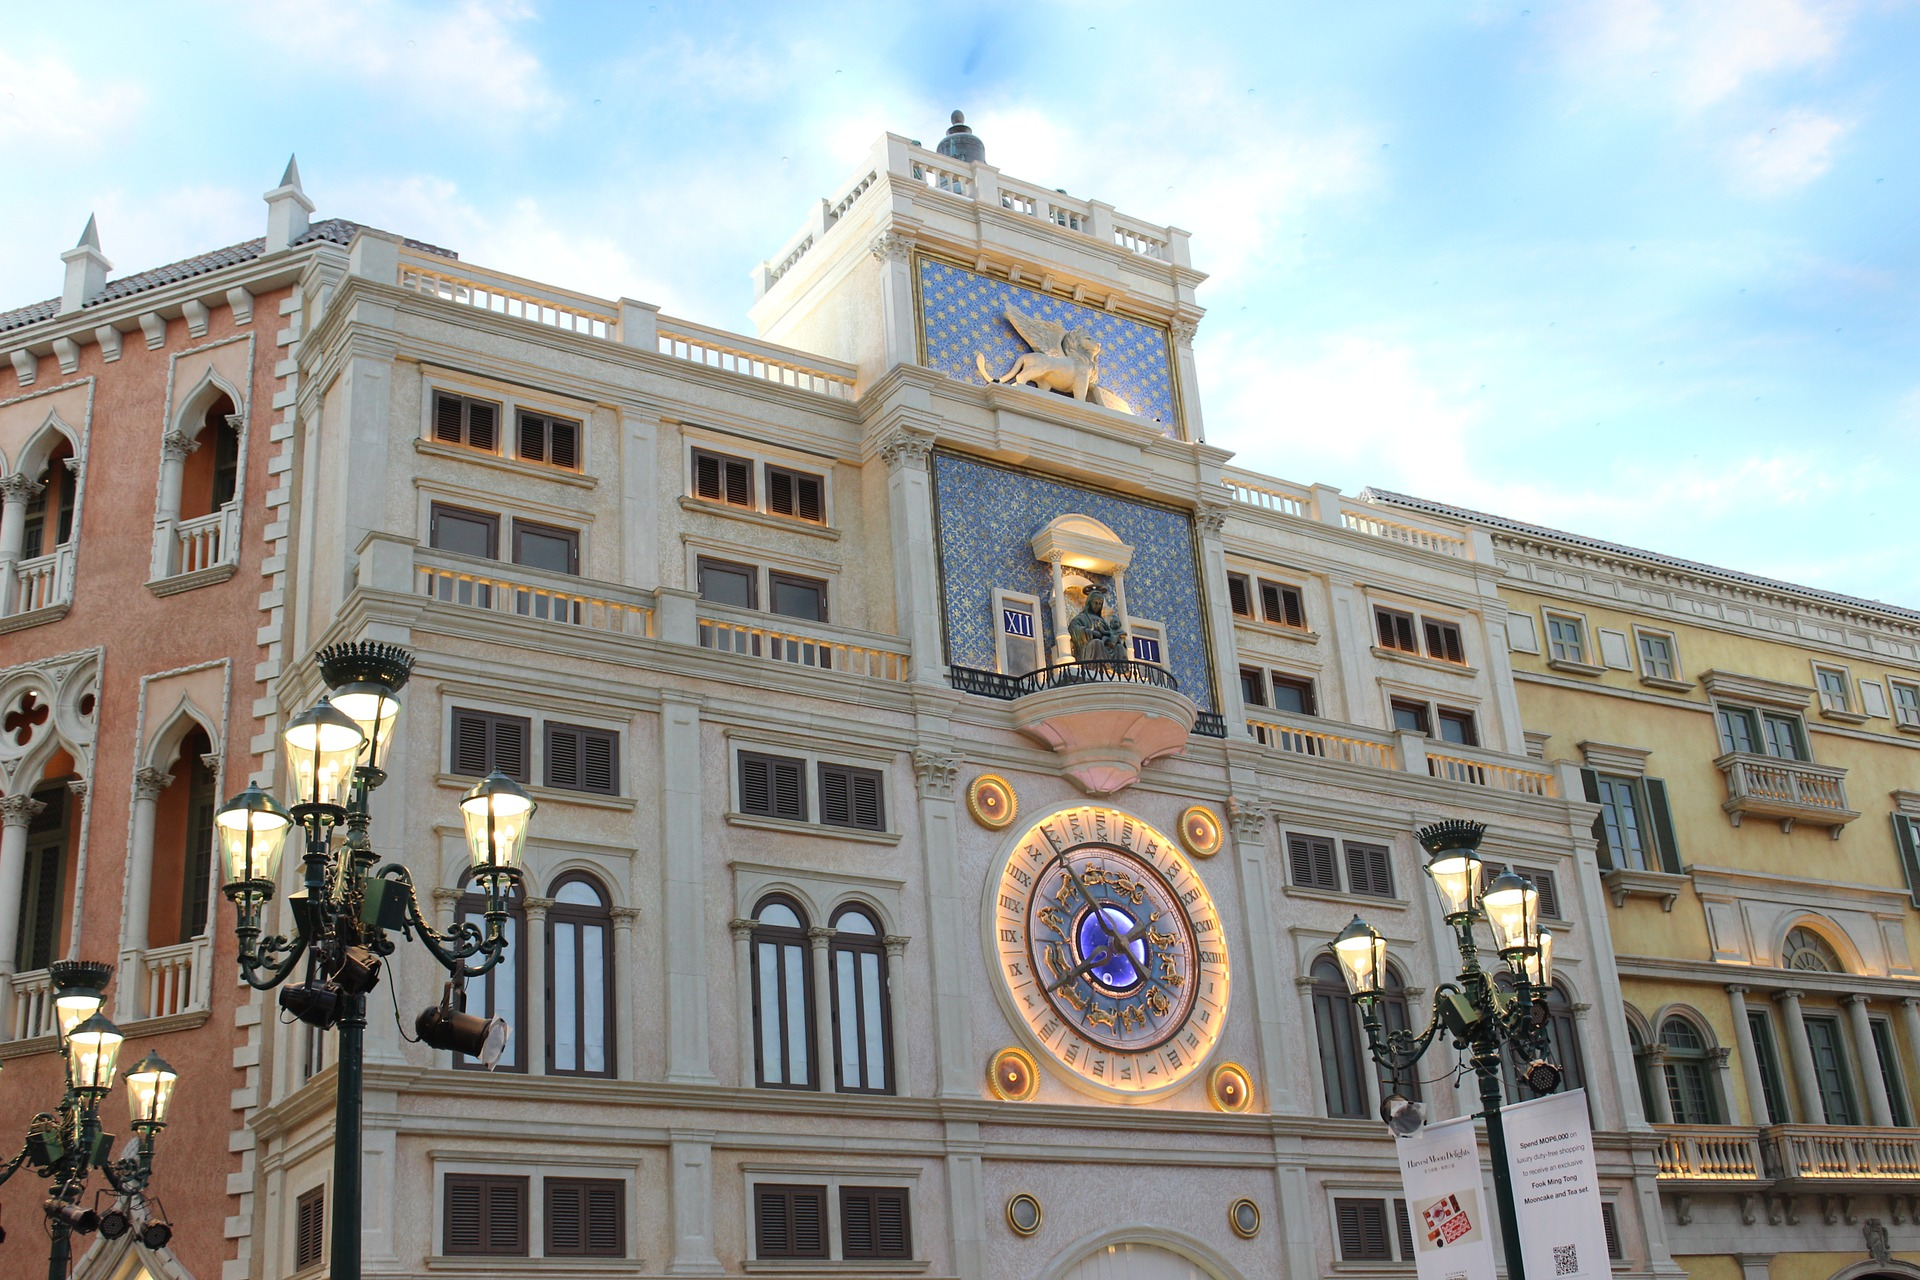 The Venetian - Macau, China